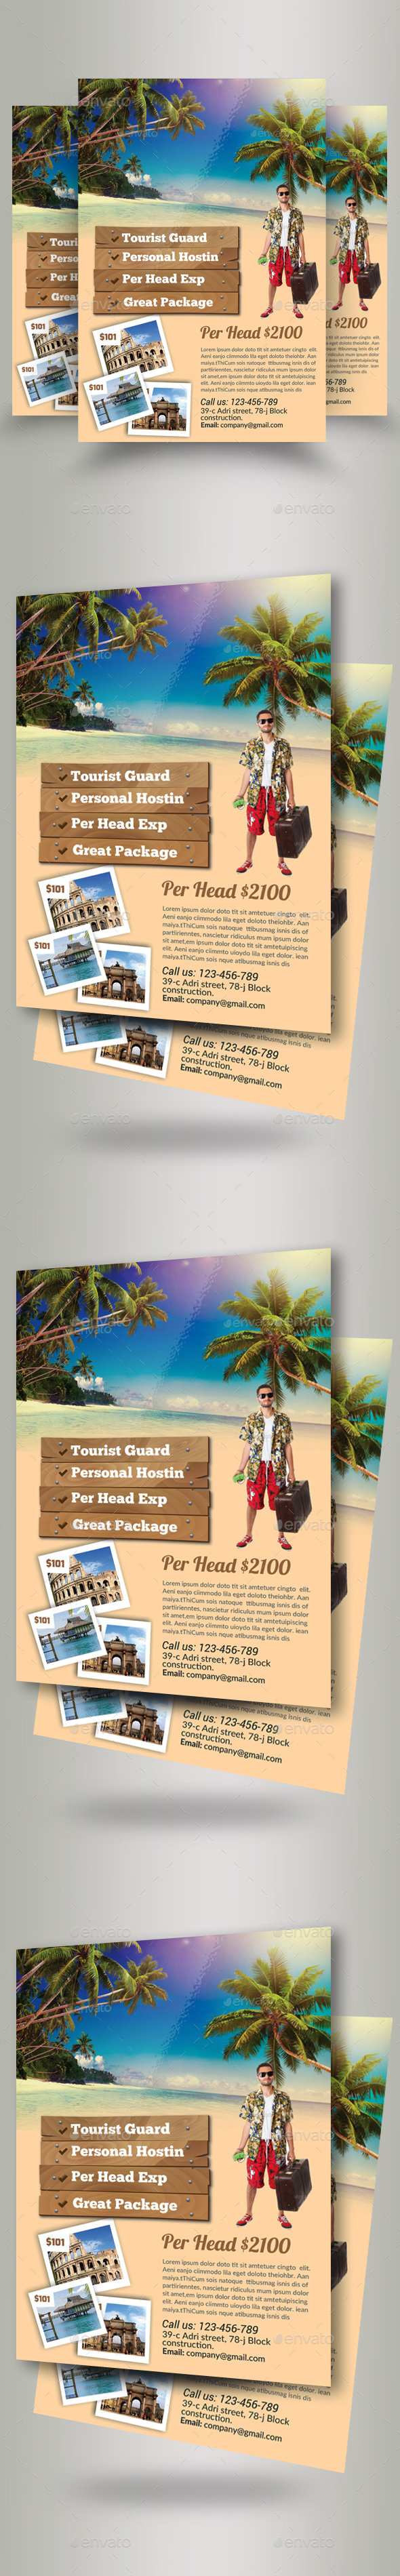 Tour Travel Agency Flyer Template - Holidays Events